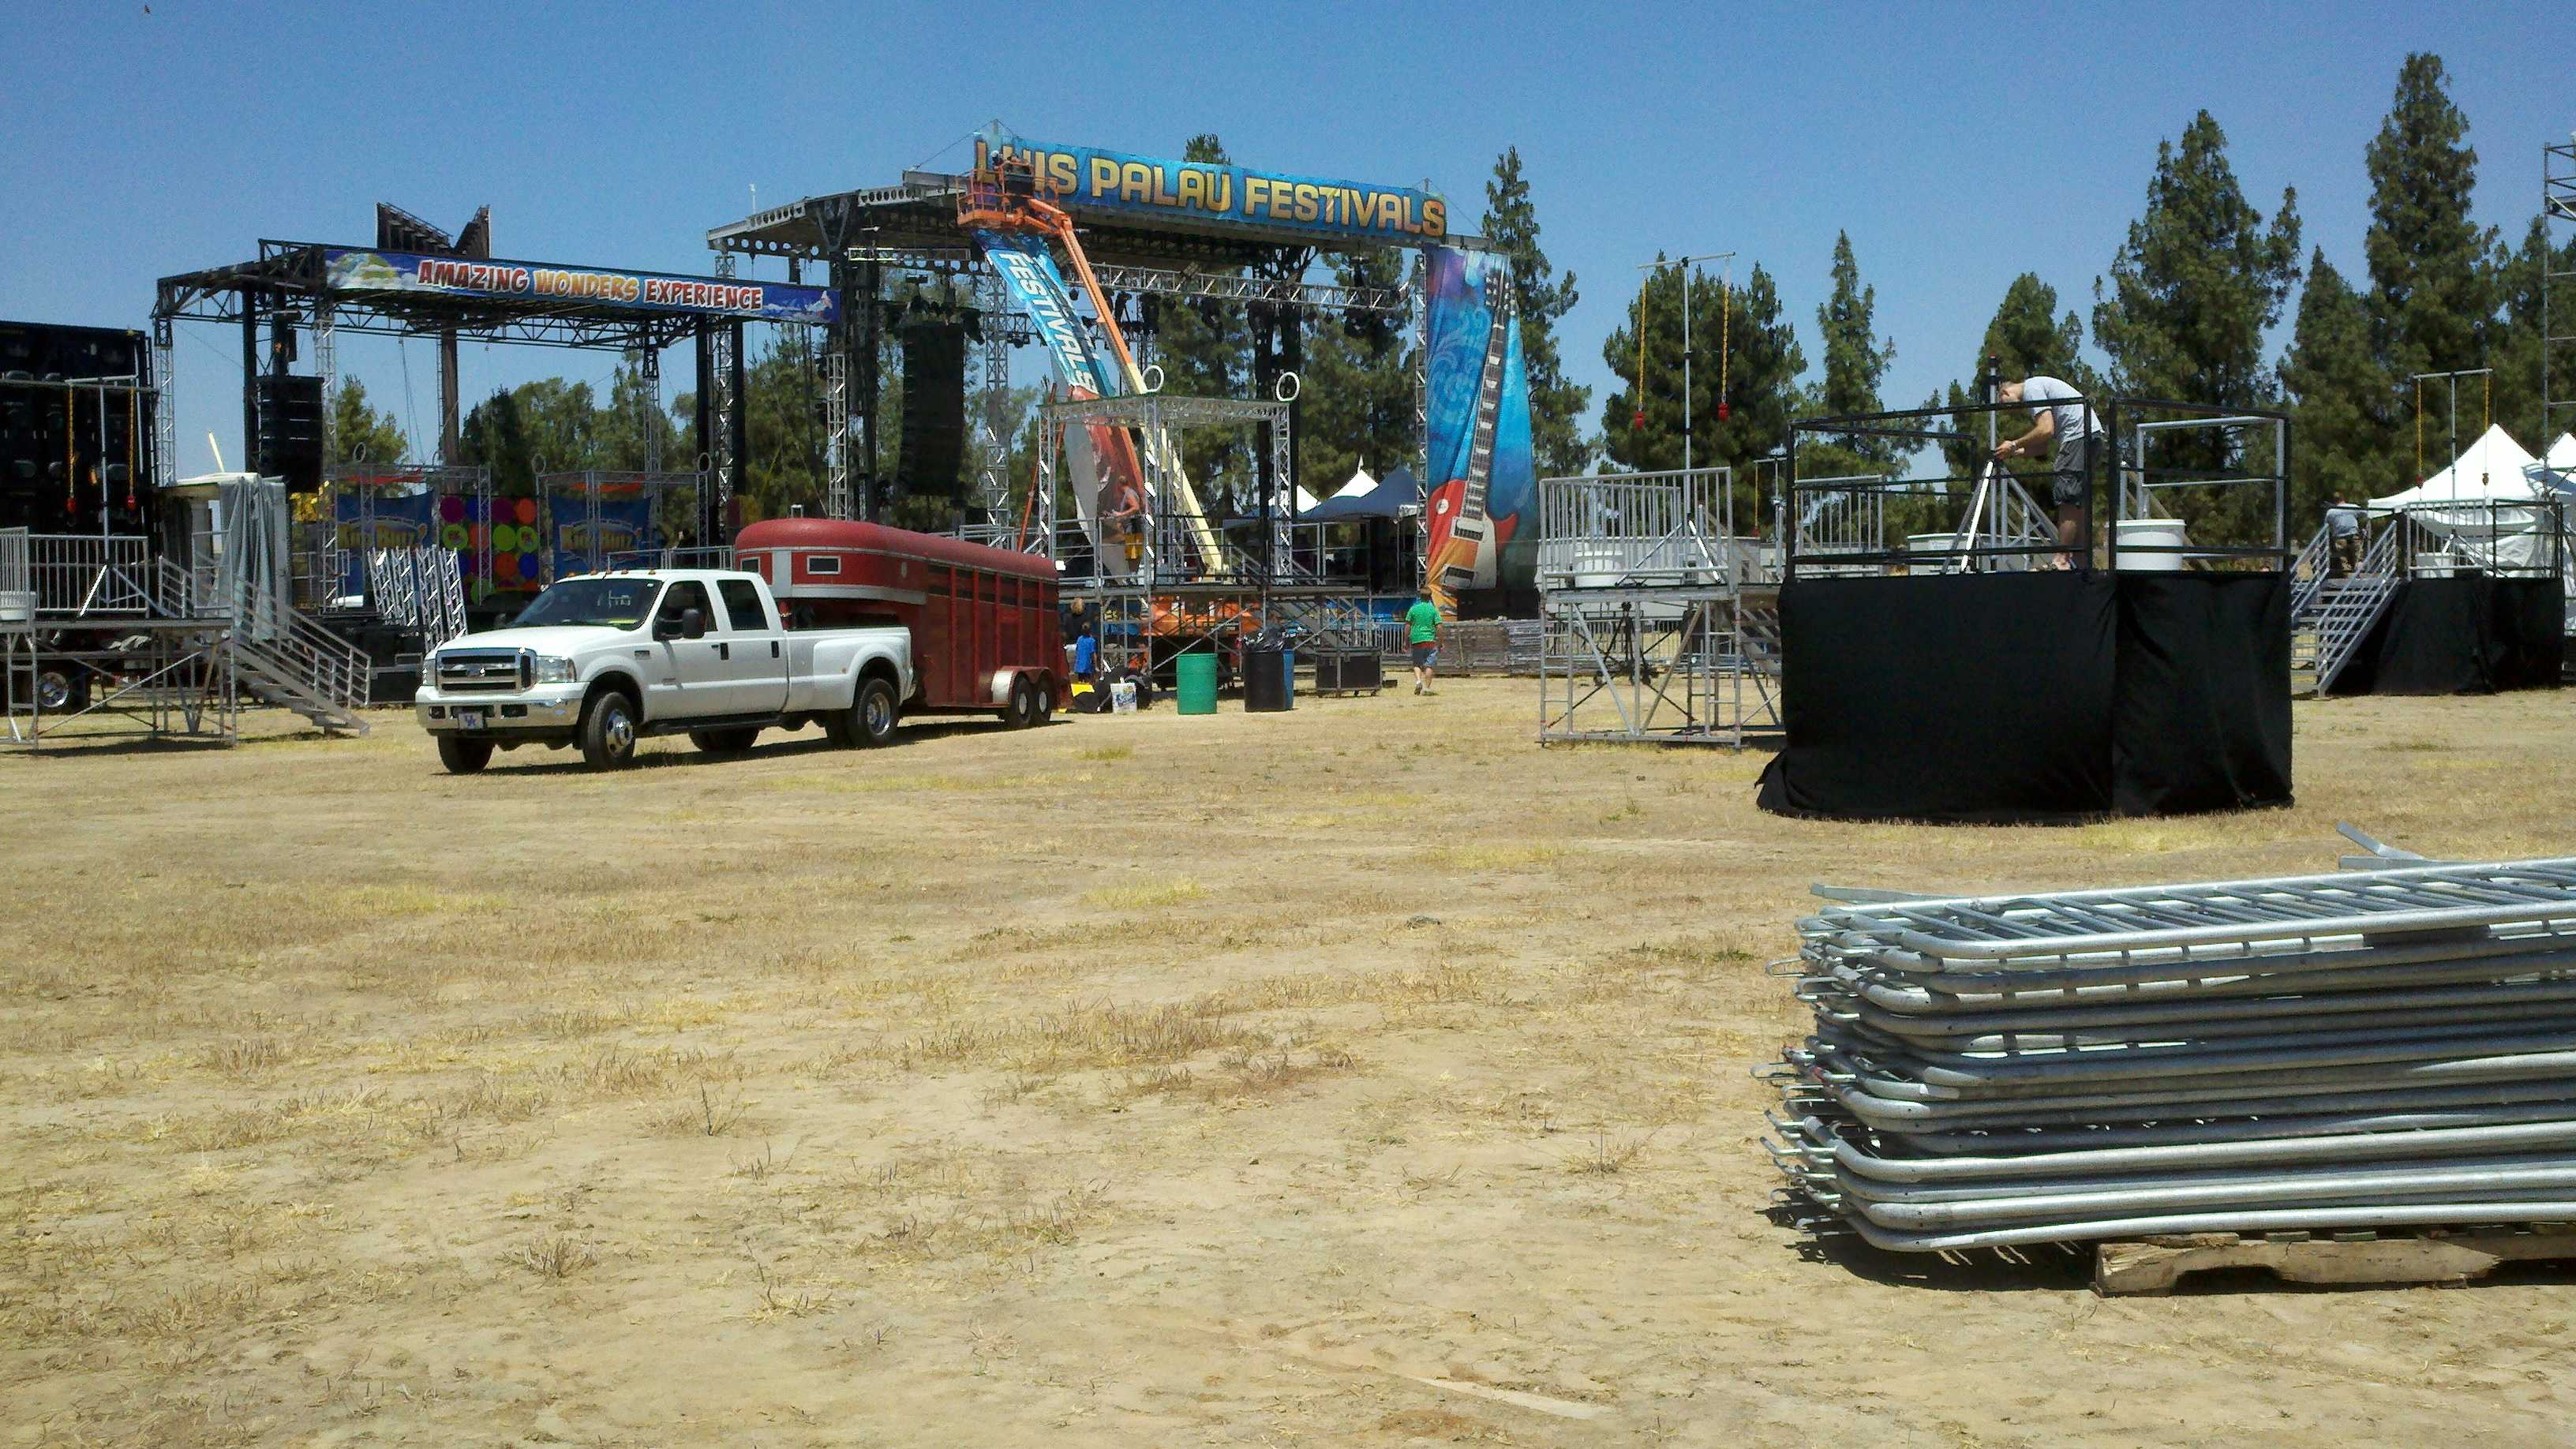 Crews assemble a stage for the Palau festival.